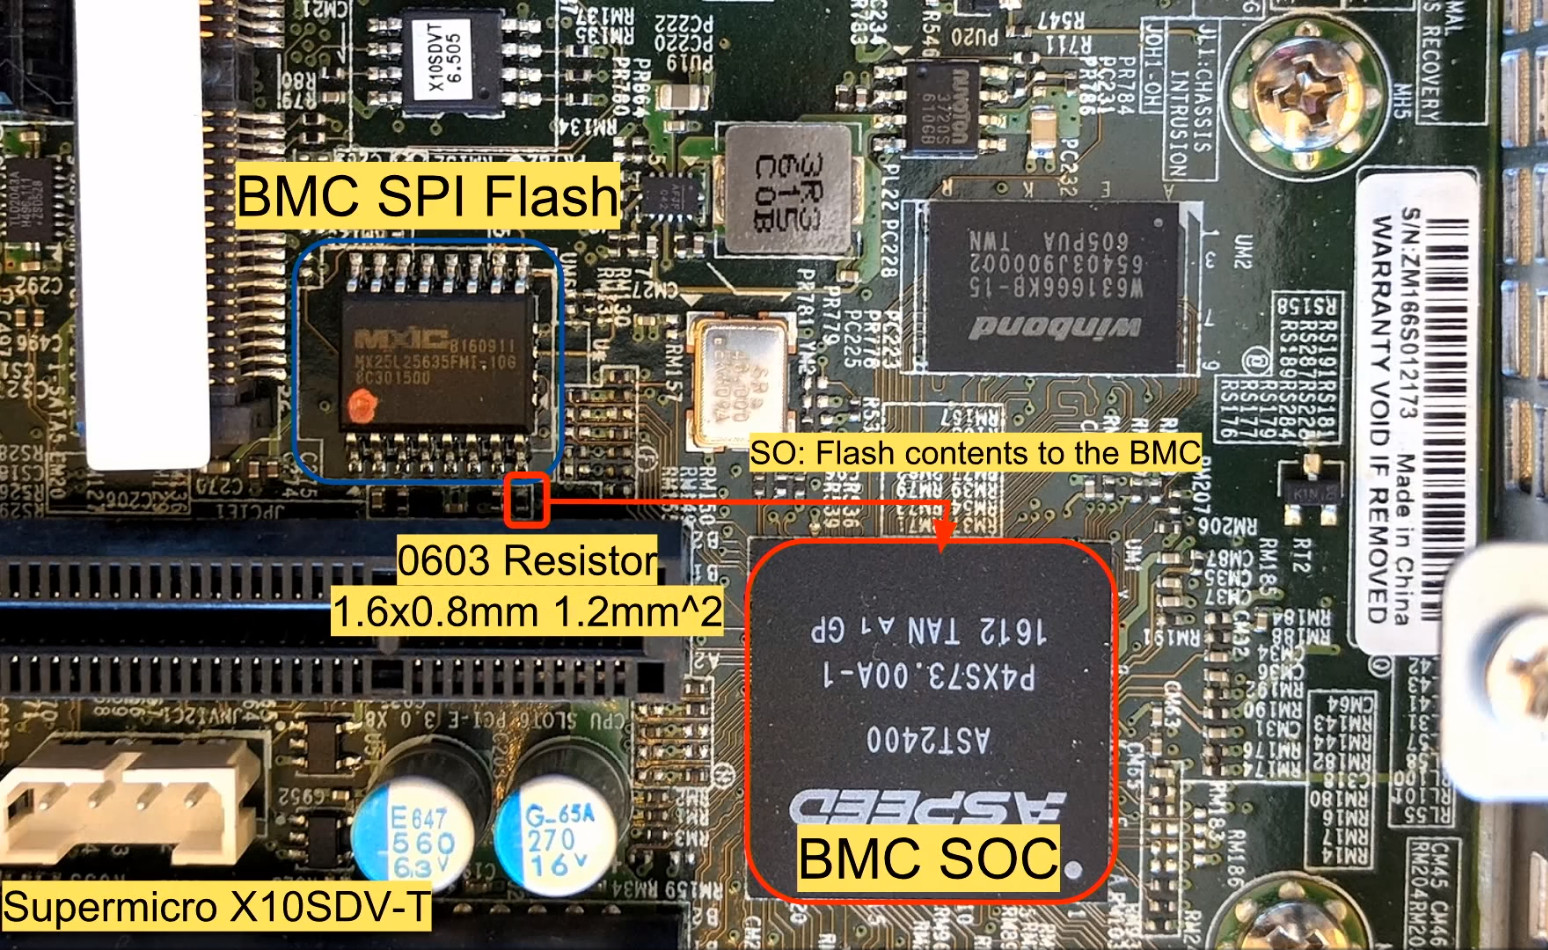 What Happened With Supermicro?